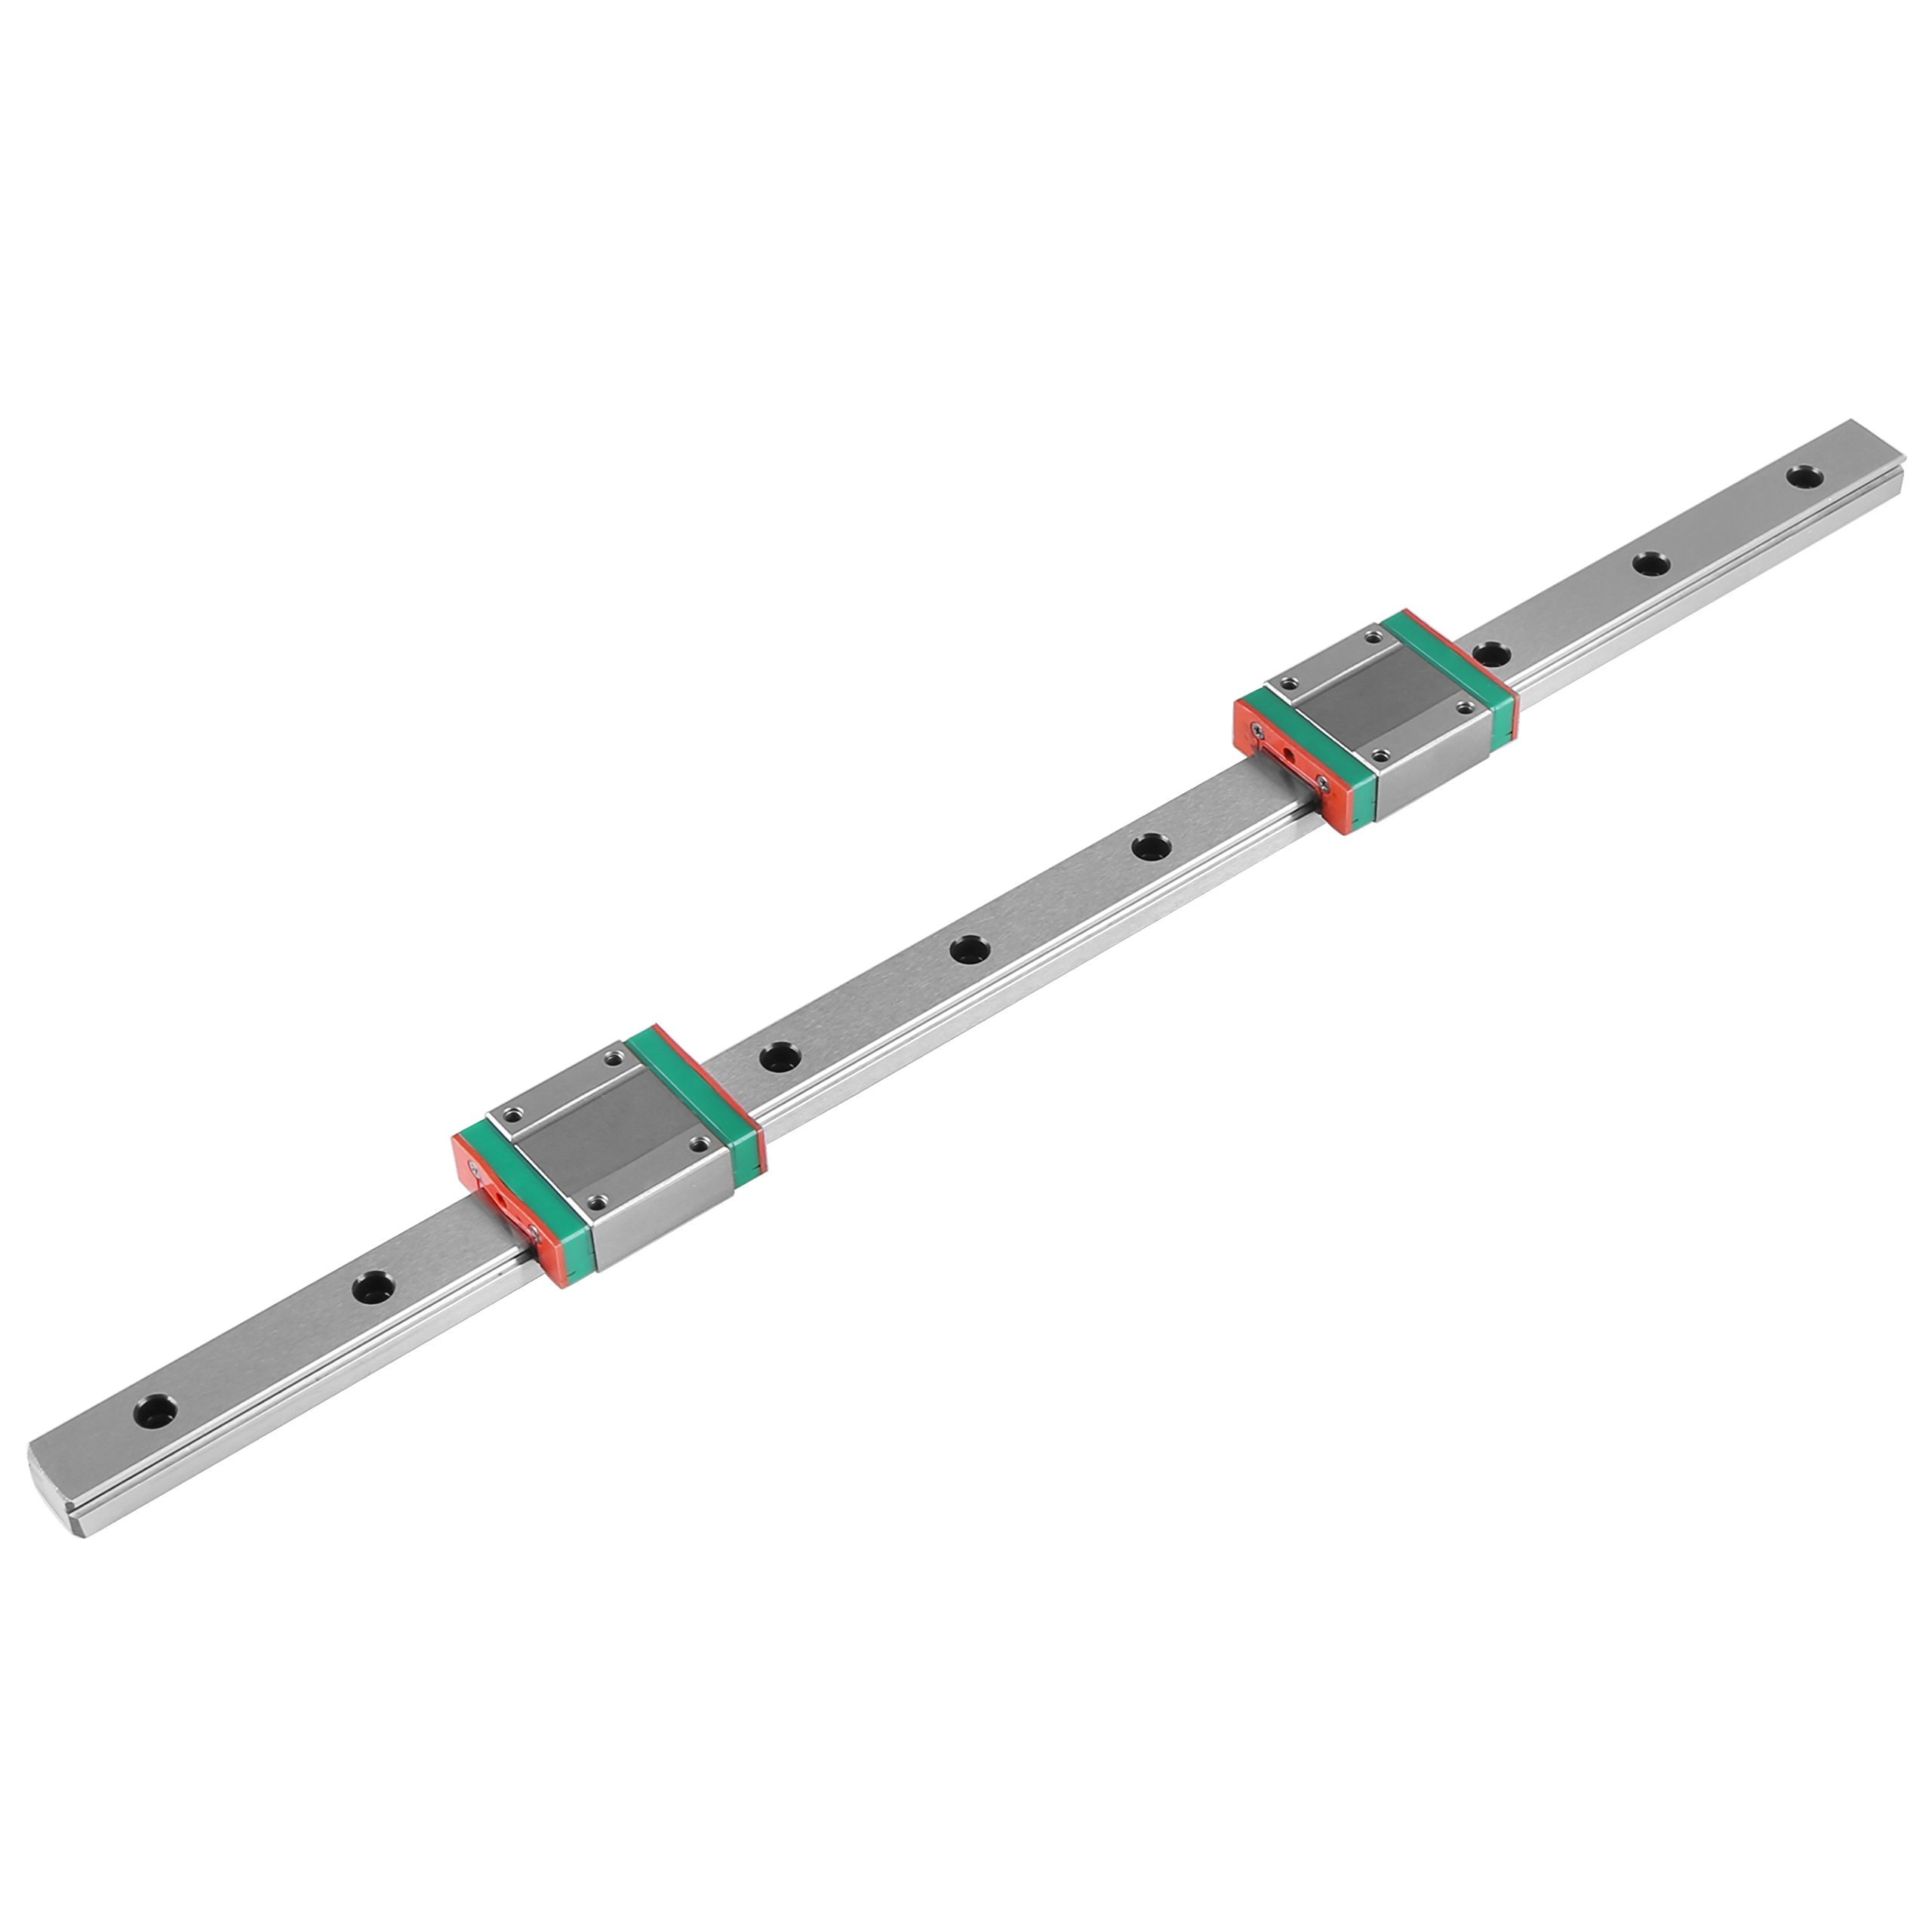 1pc 400mm/15.7in Steel High Precision Miniature Linear Sliding Rail Guide with 2 Block